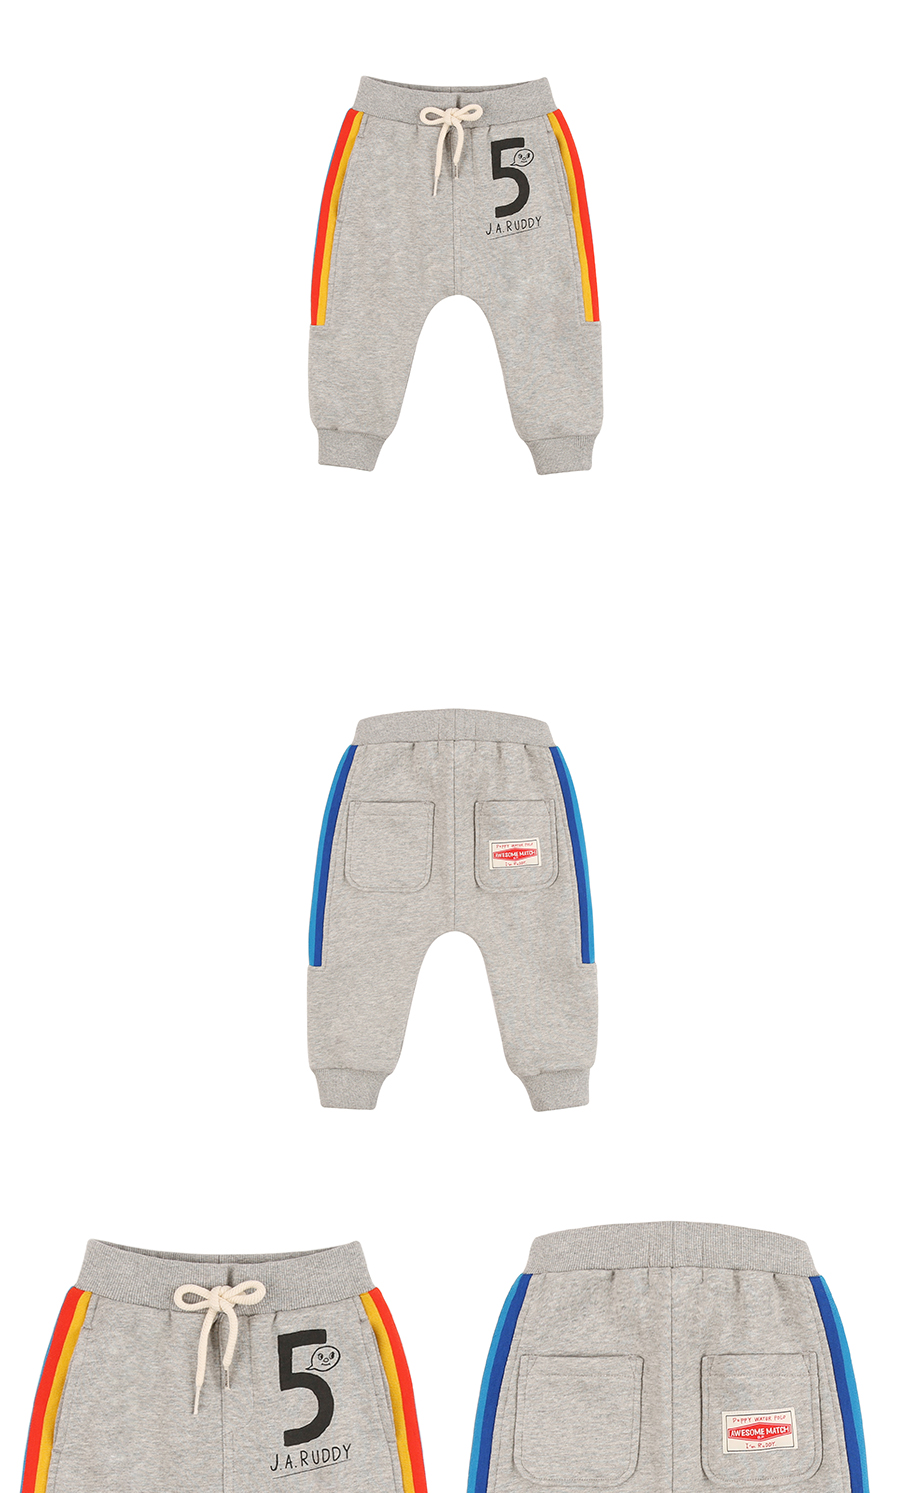 Number 5 ruddy baby rainbow jersey pants 상세 이미지